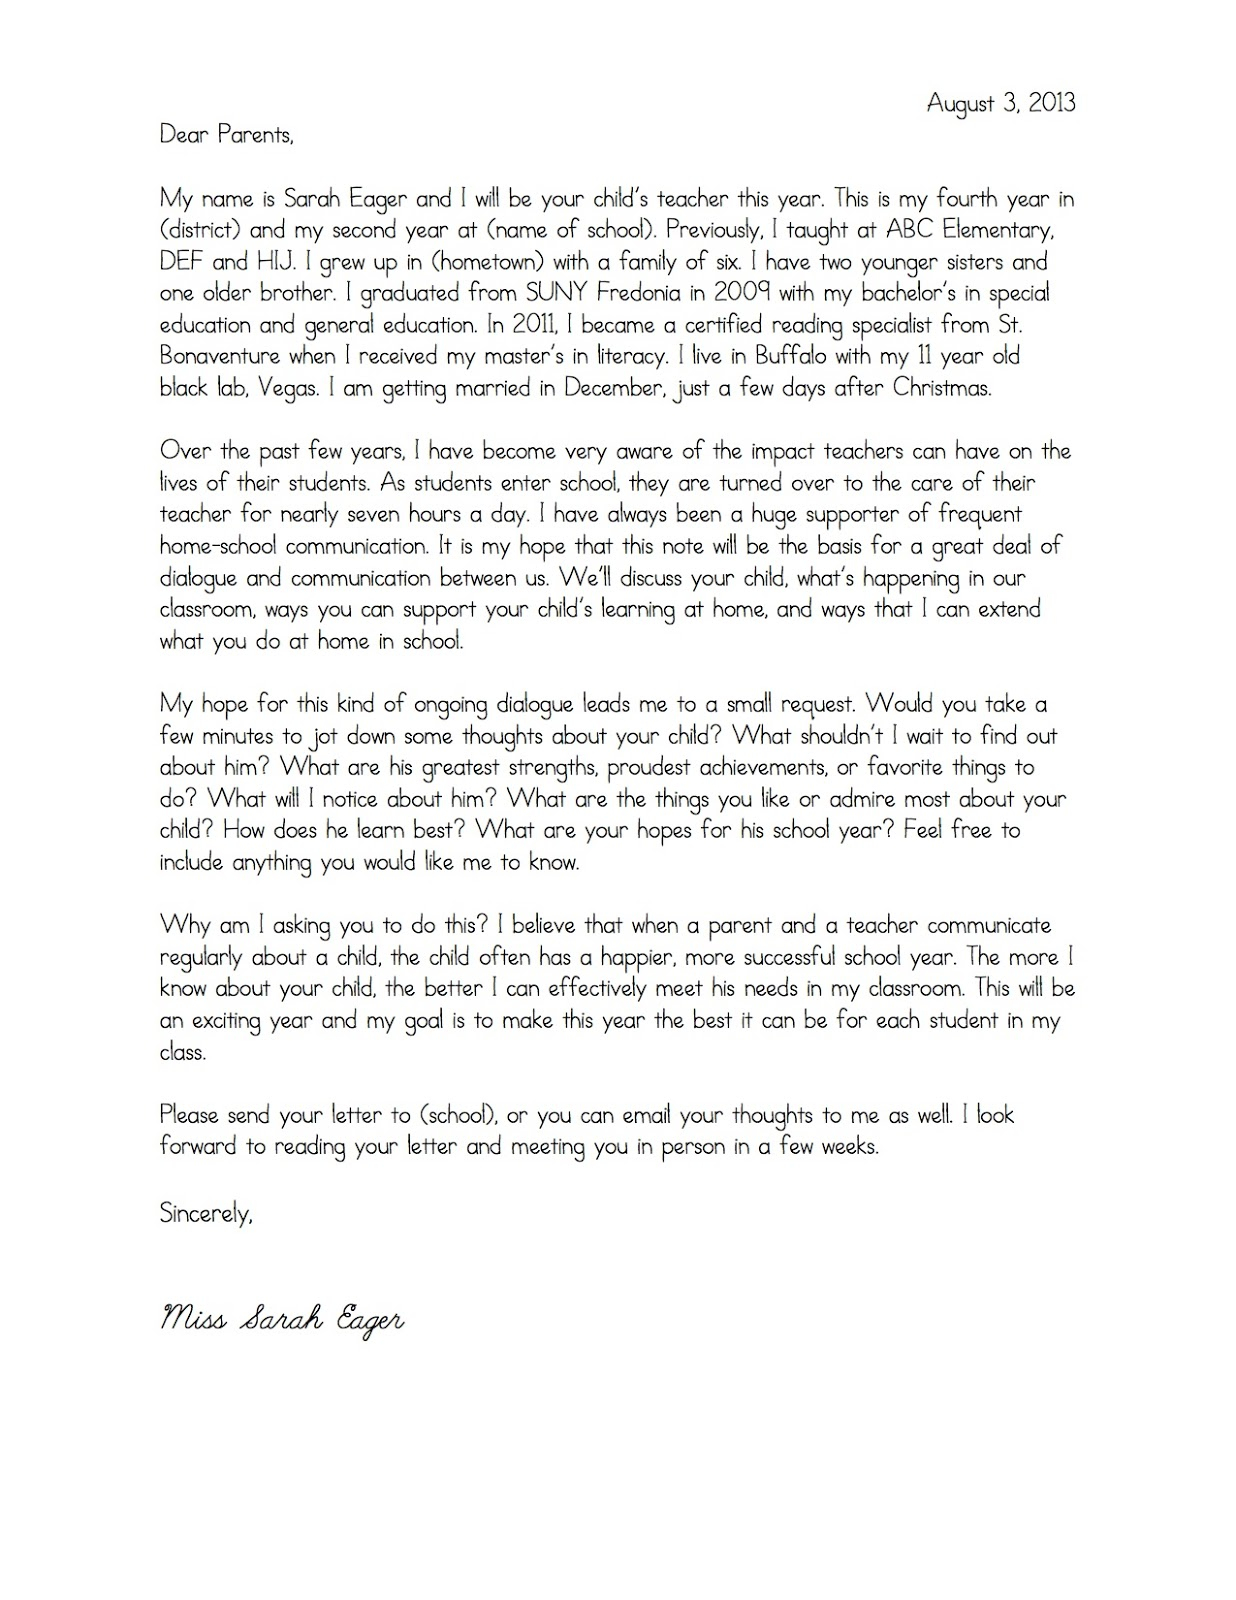 Teacher welcome letter to parents template samples for Parent letter from teacher template